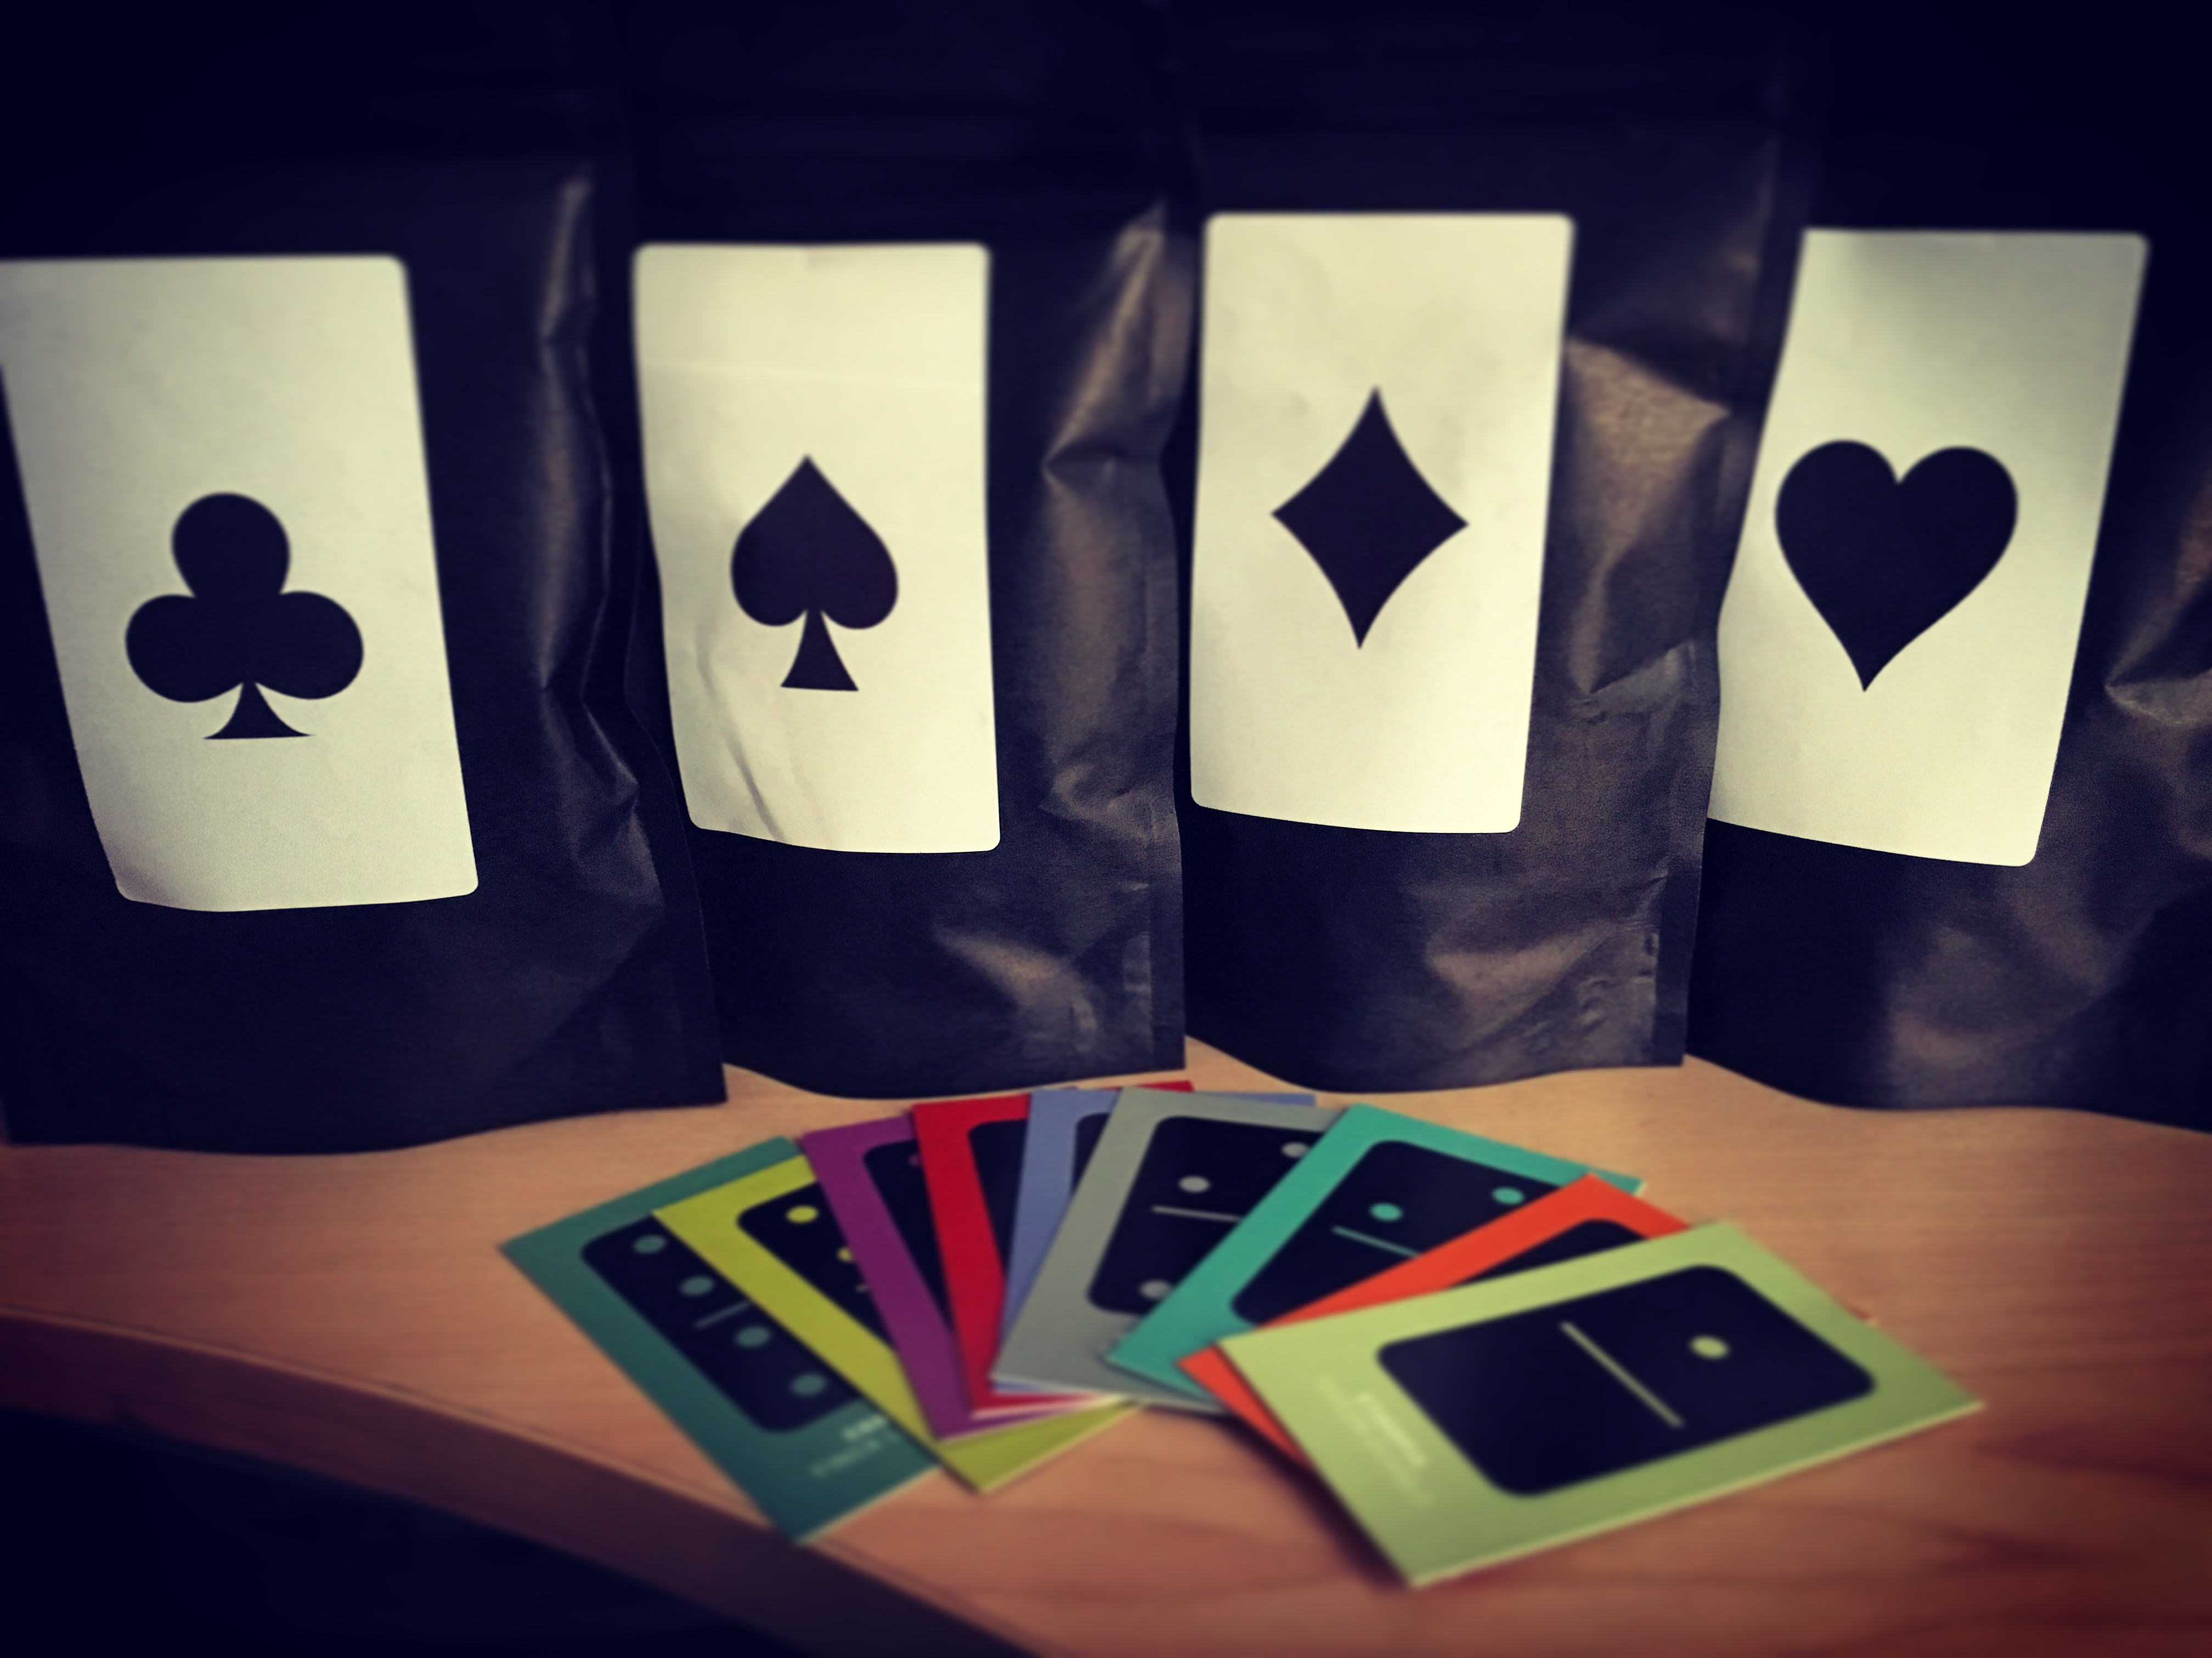 Flight of Fancy – A Contest for Coffee Geeks